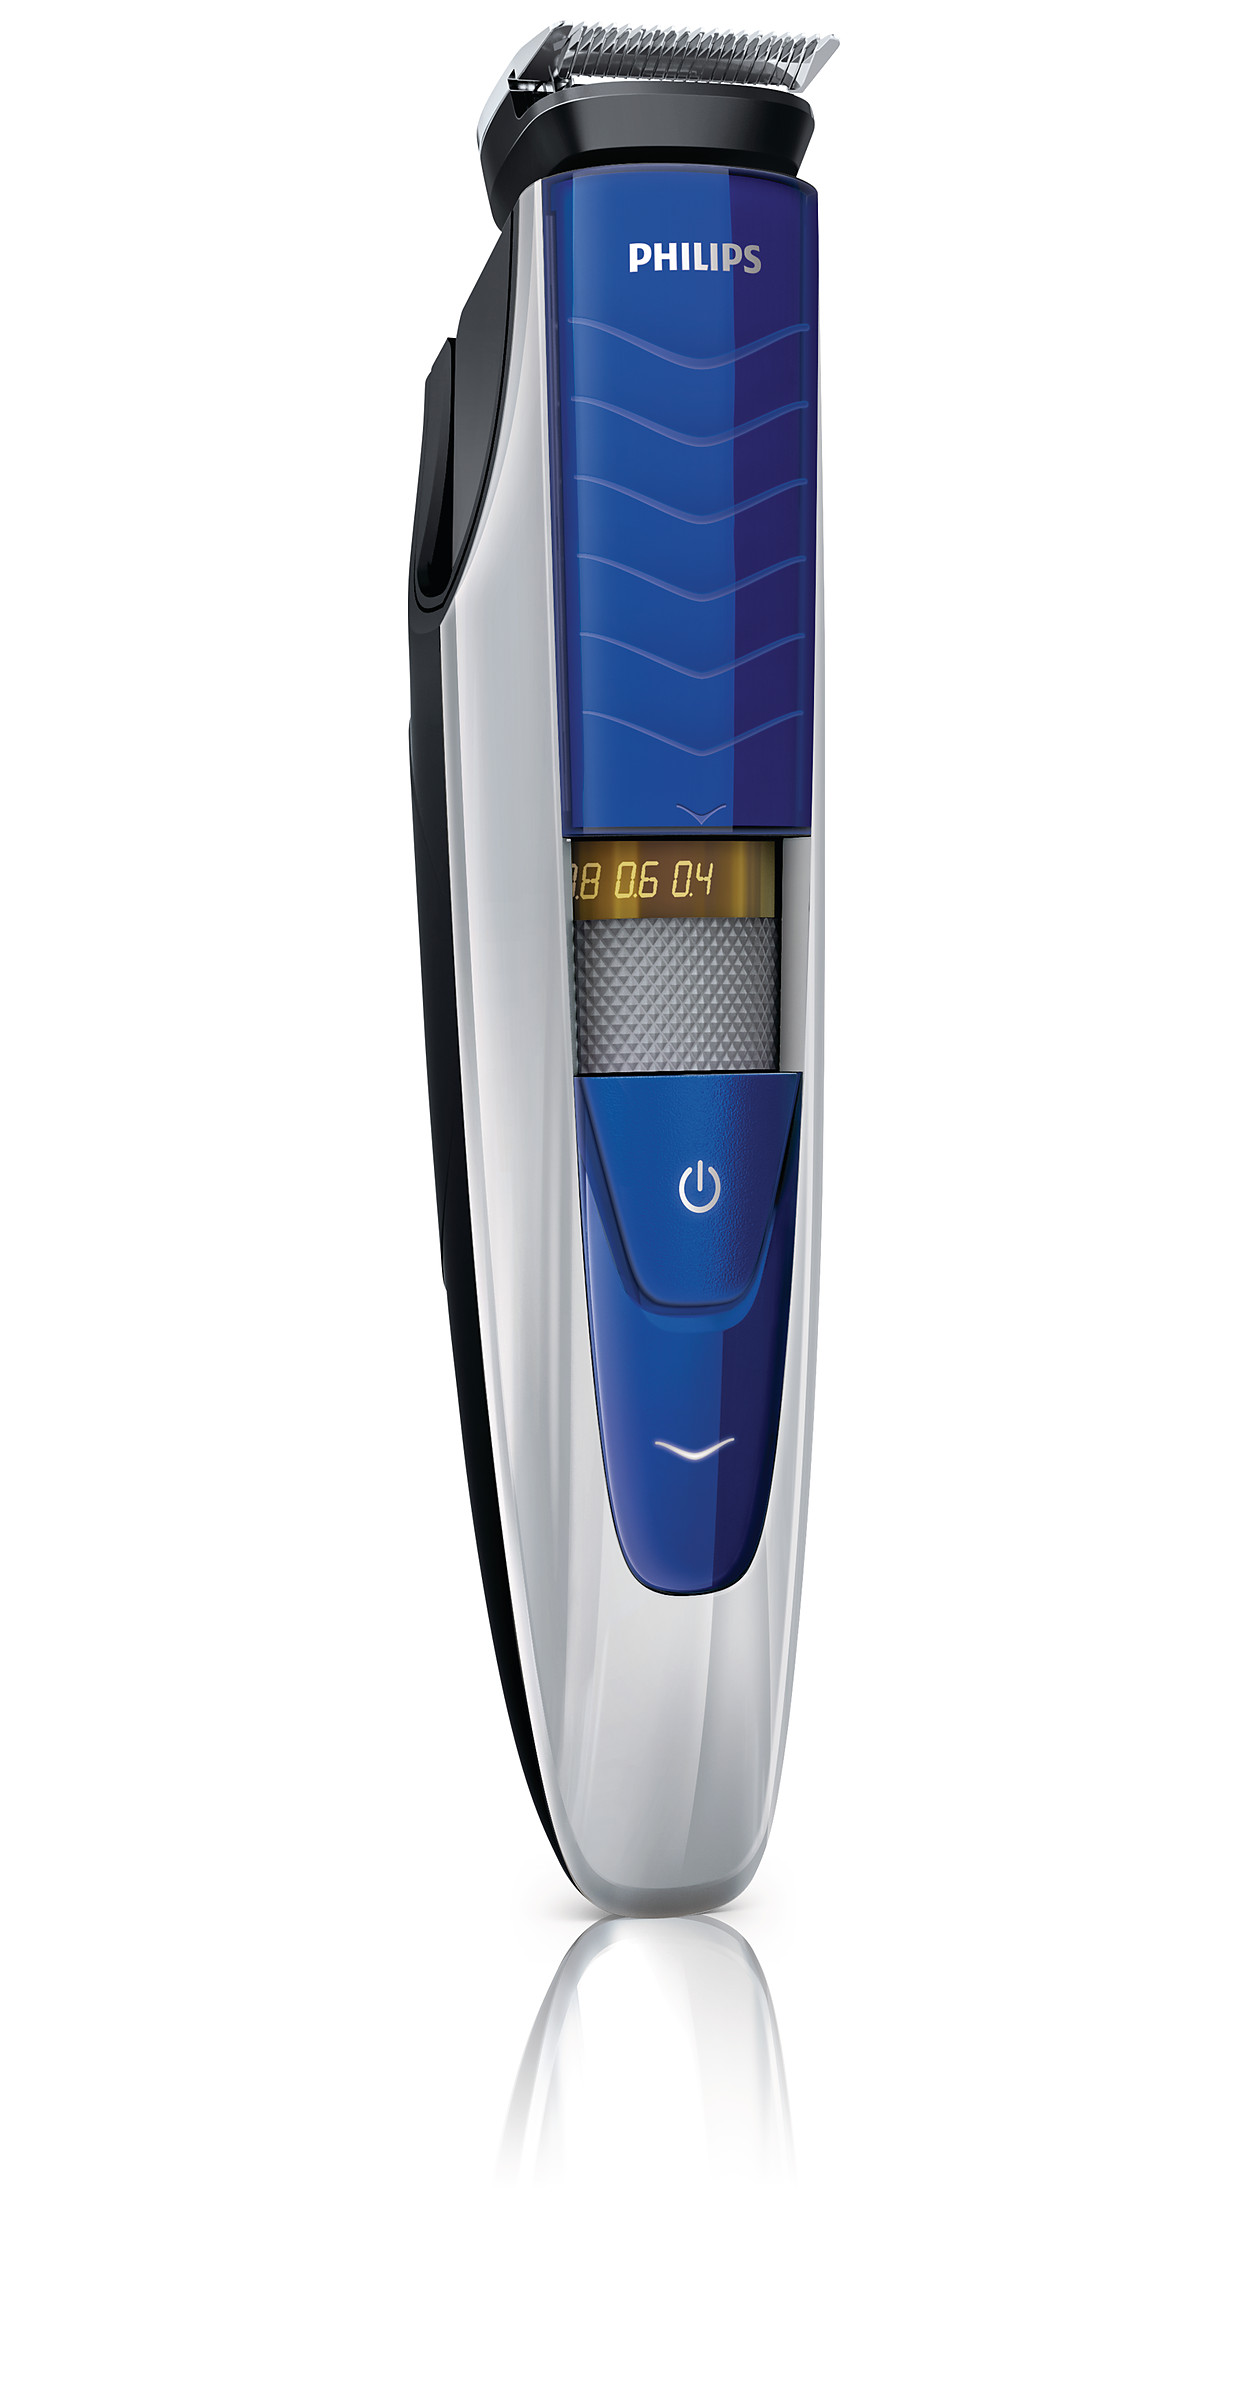 beardtrimmer series 5000 waterproof beard trimmer bt5270 32 philips. Black Bedroom Furniture Sets. Home Design Ideas